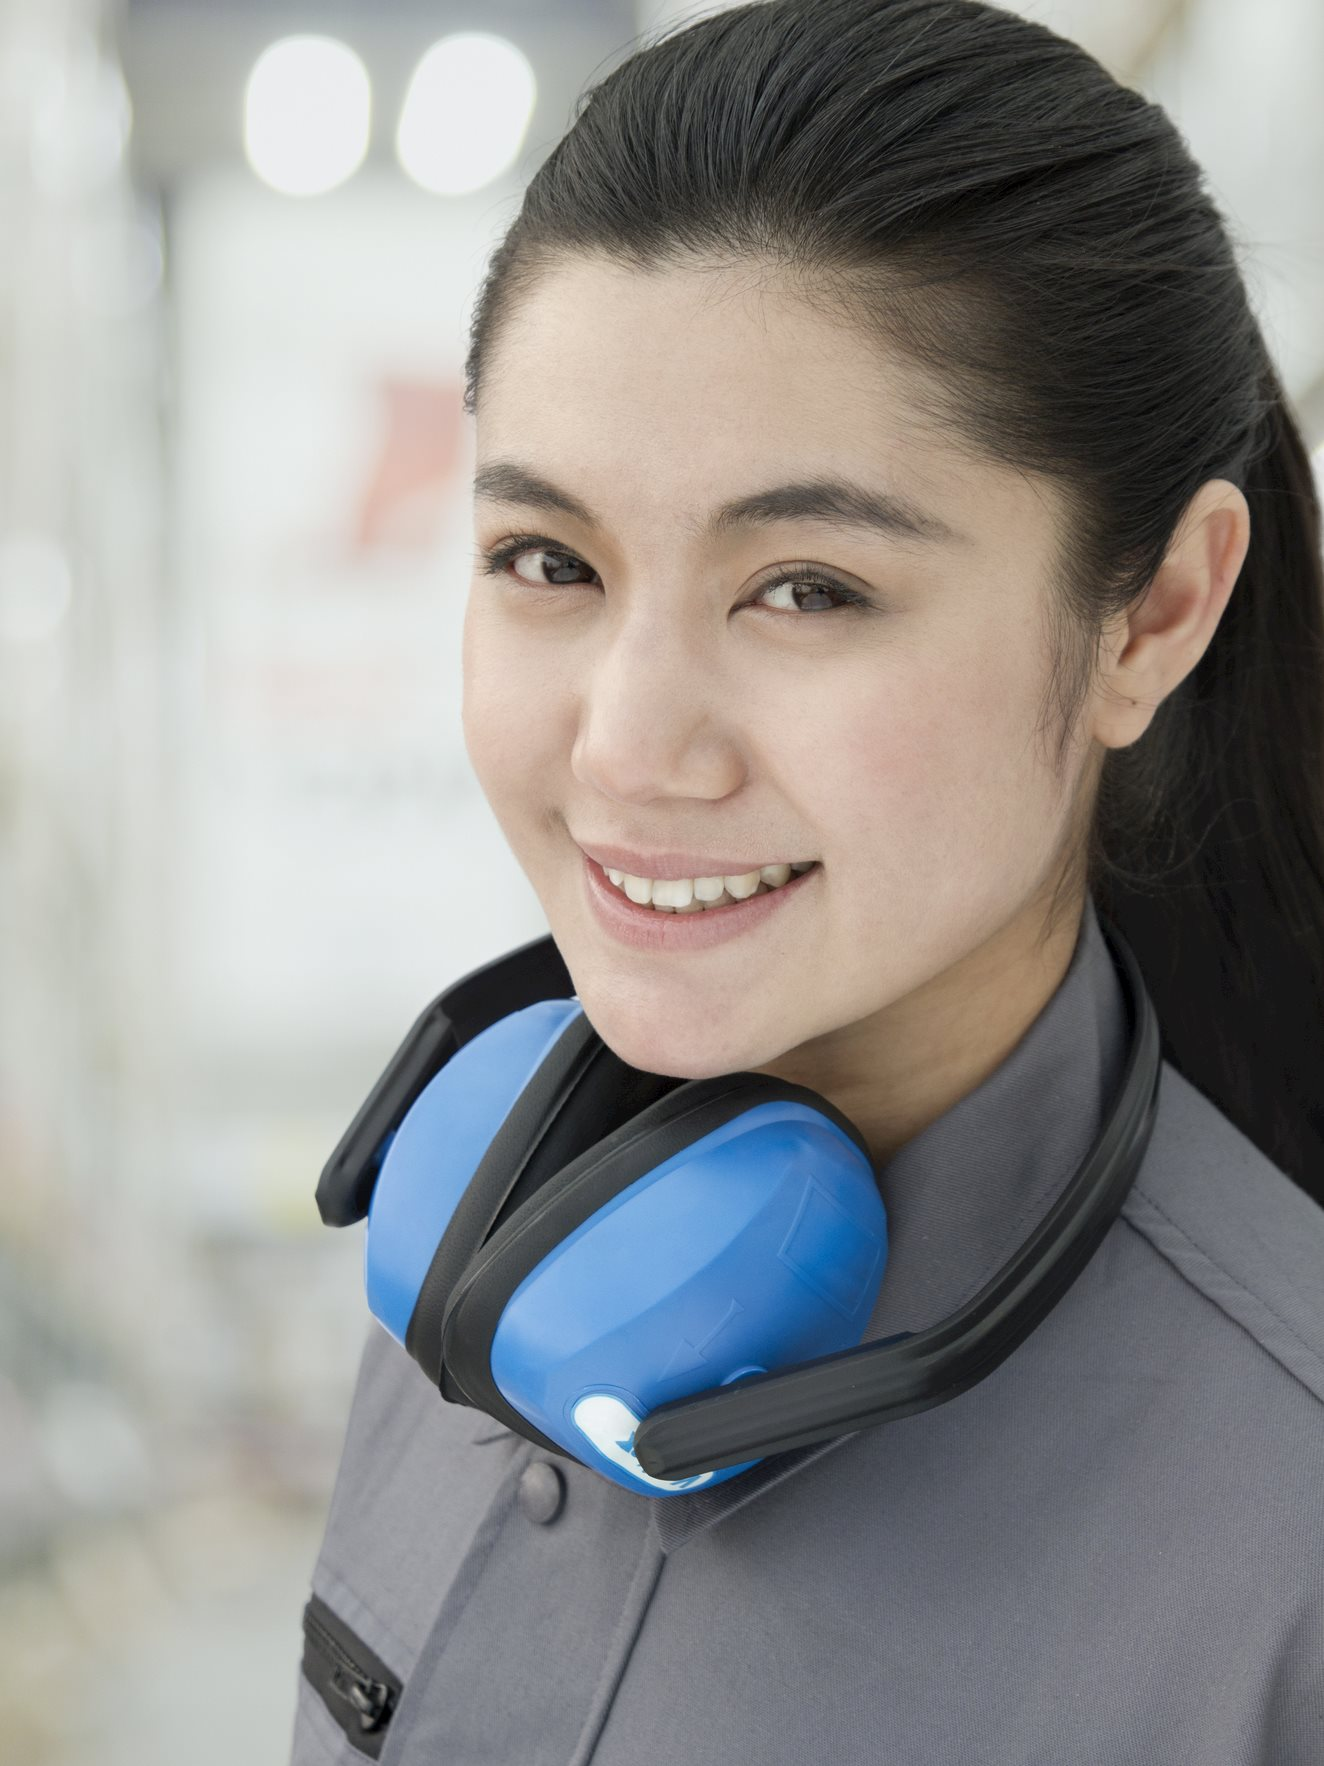 HQ_IMG_Chinese_Factory_Worker_With_Headphones.jpg